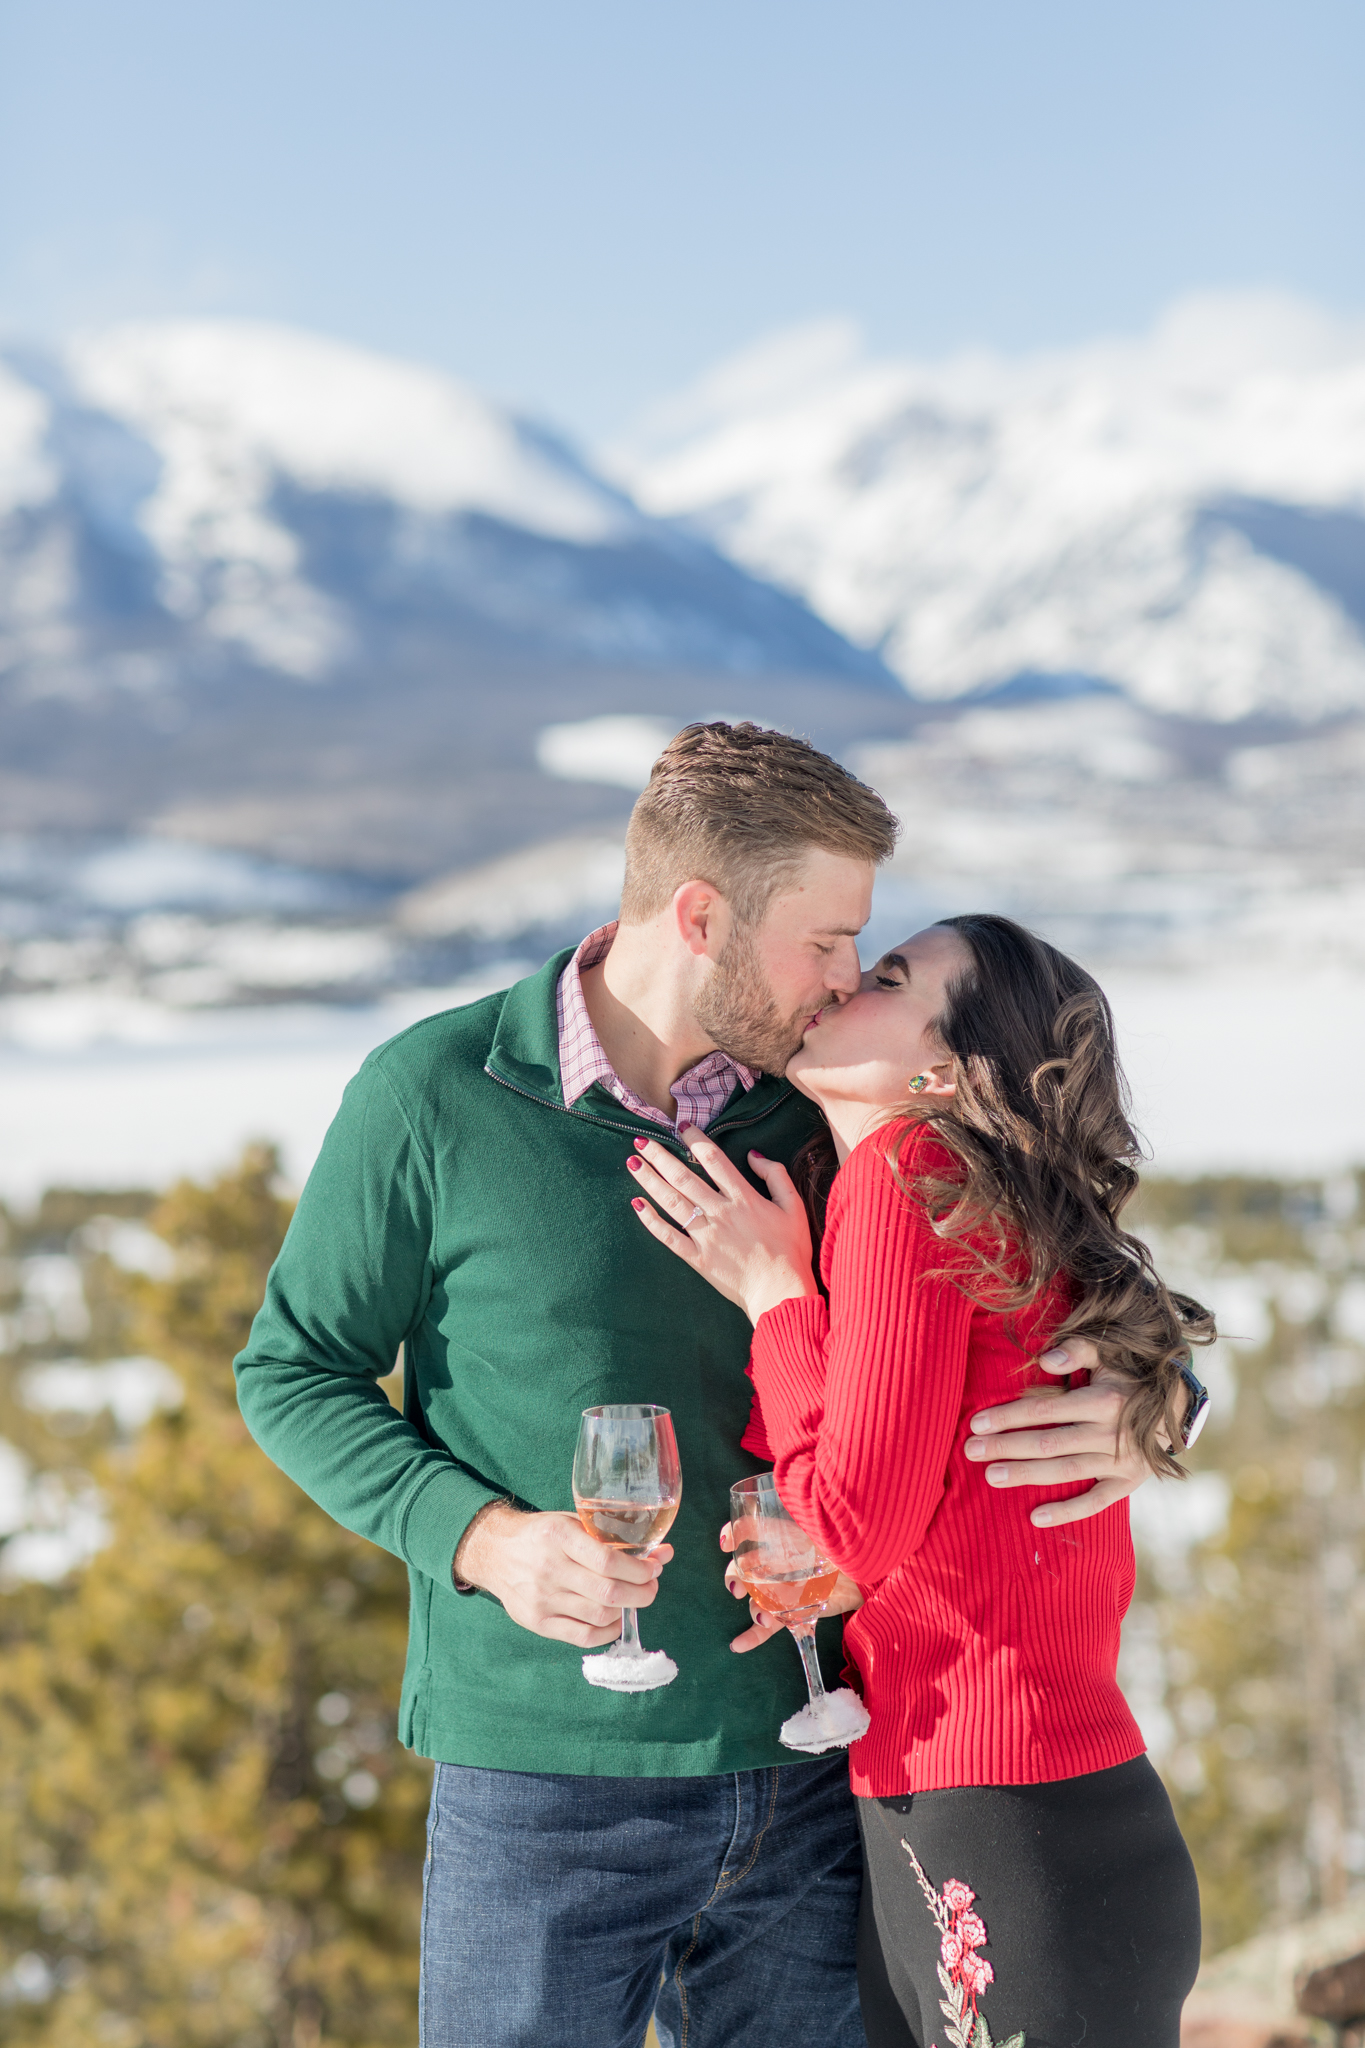 Tanner_and_Bryanna_Breckenridge_Proposal-10